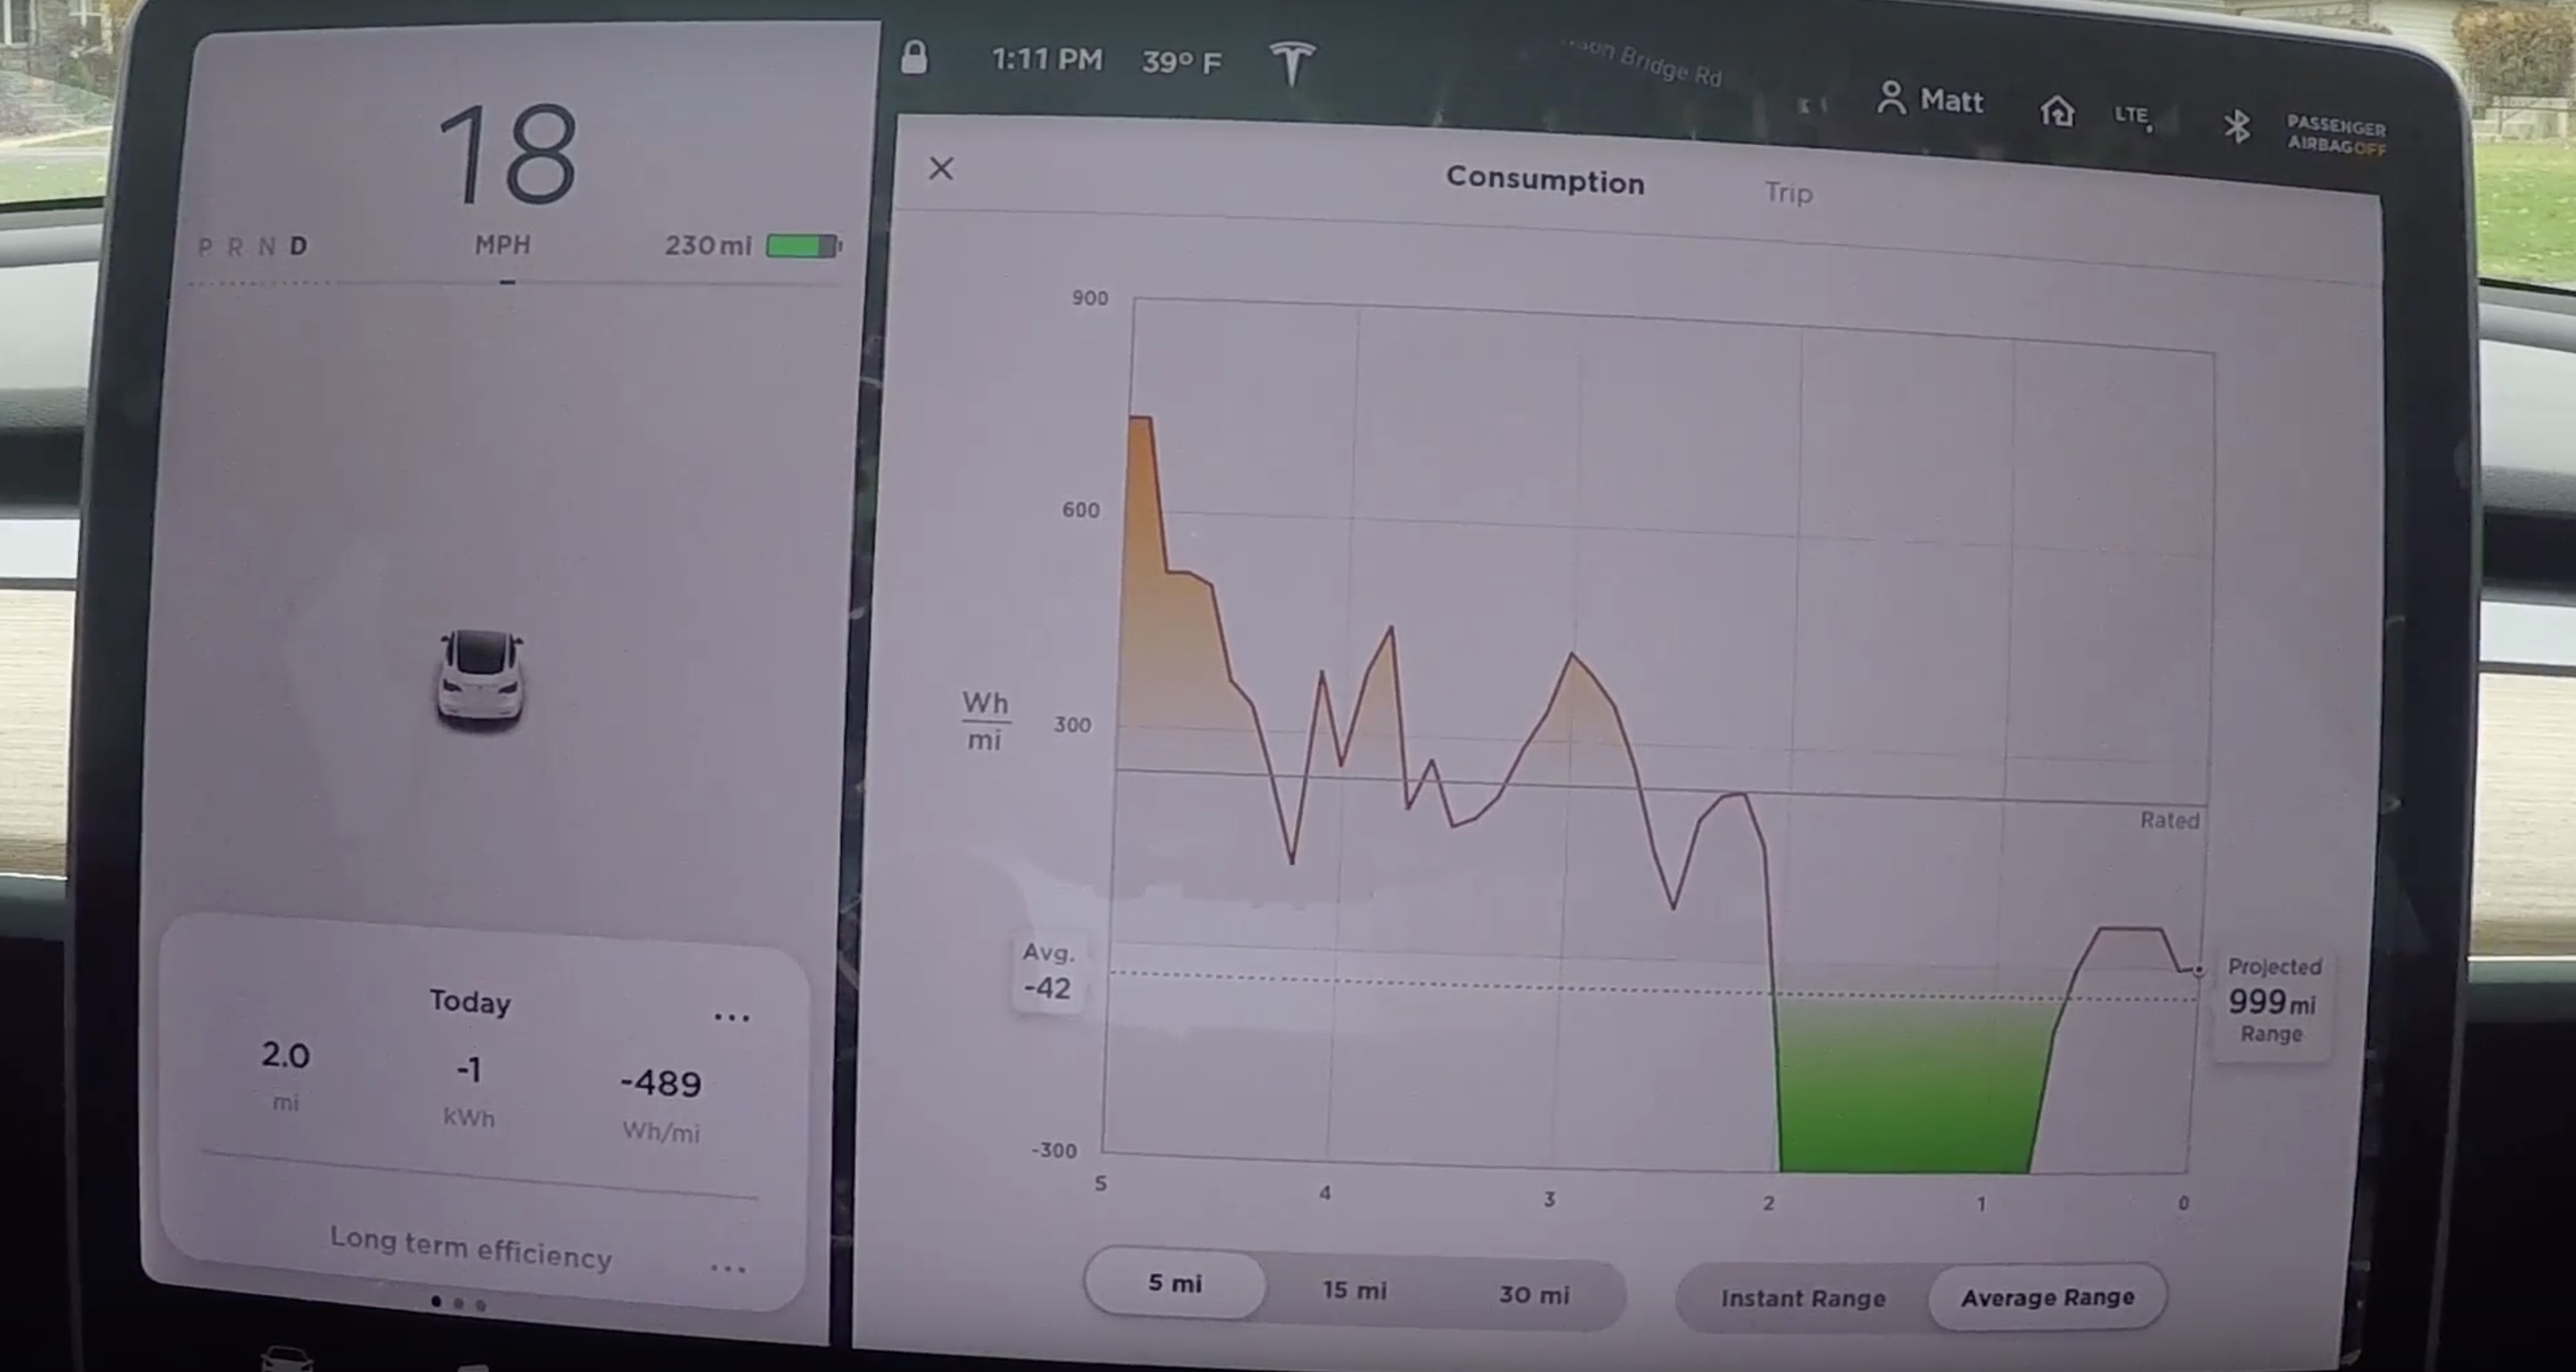 Tesla Model 3 owner gets about 10 miles of range with regen by towing the car over 1 mile